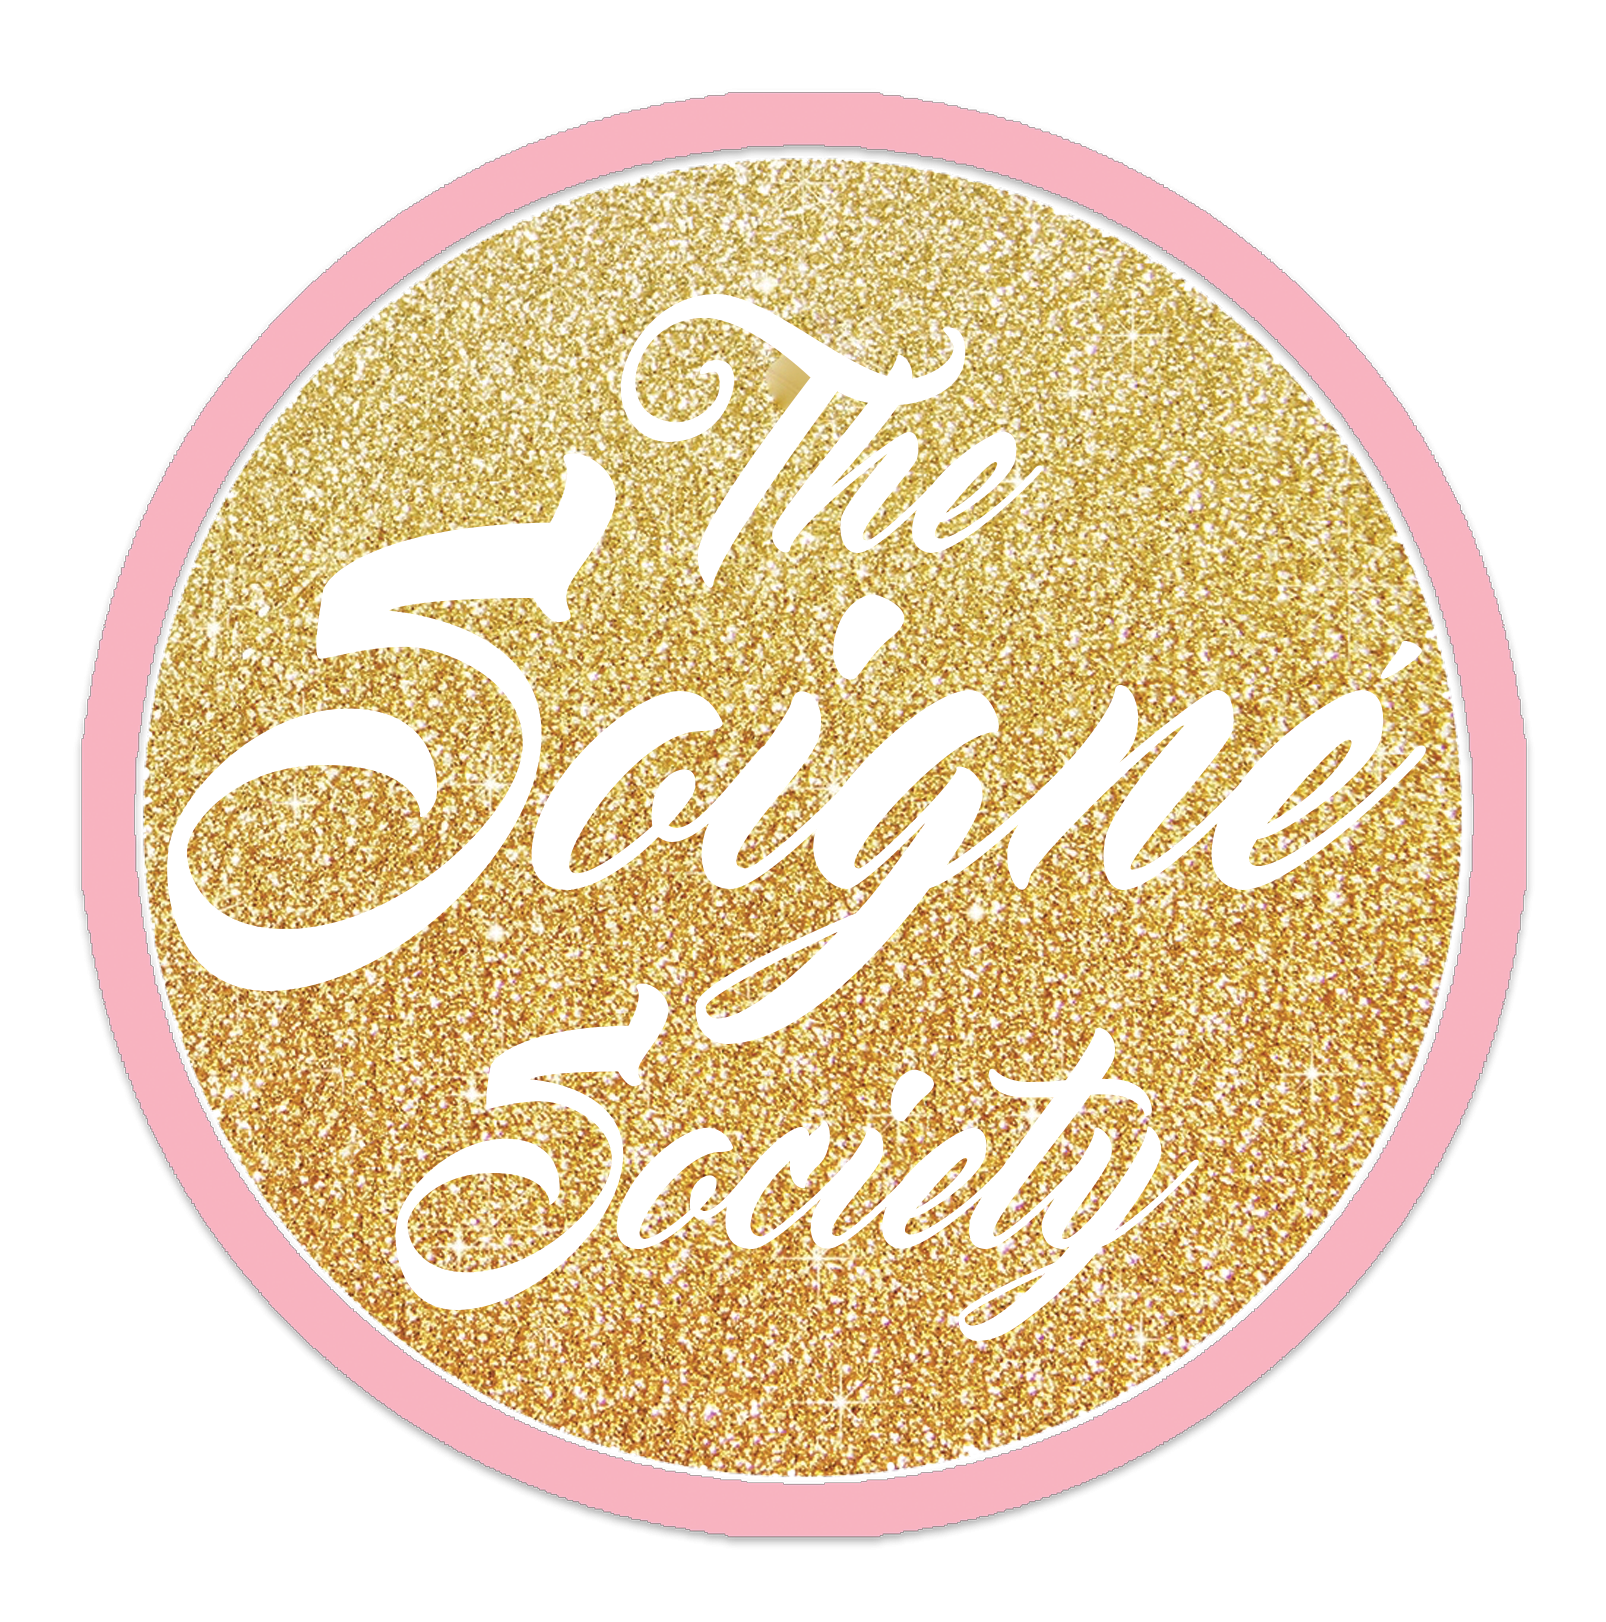 The Soigné Society